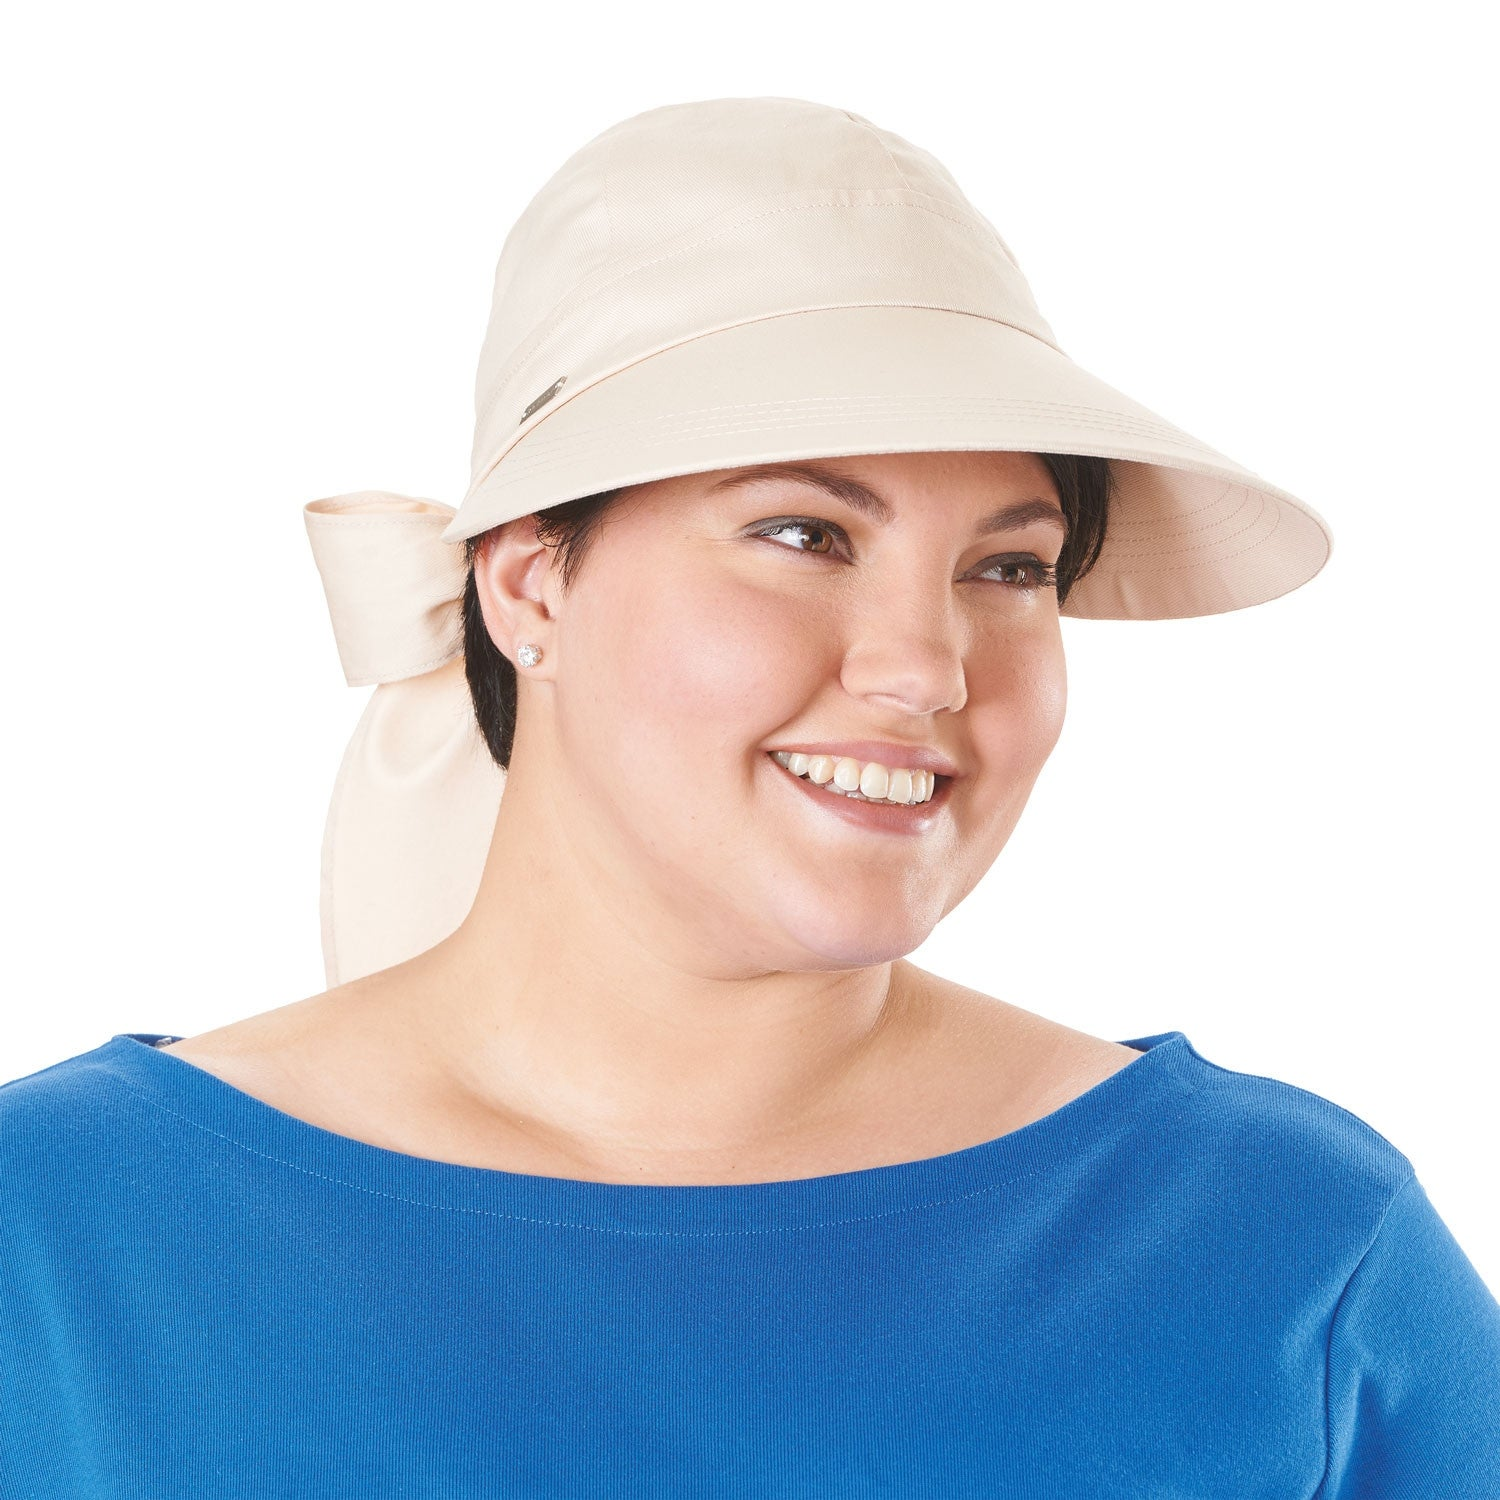 7b3fe6fc8df2a Shop Women s Wide Brim Sun Hat - Provides UV Protection UPF50 - On Sale - Free  Shipping On Orders Over  45 - Overstock - 17142857